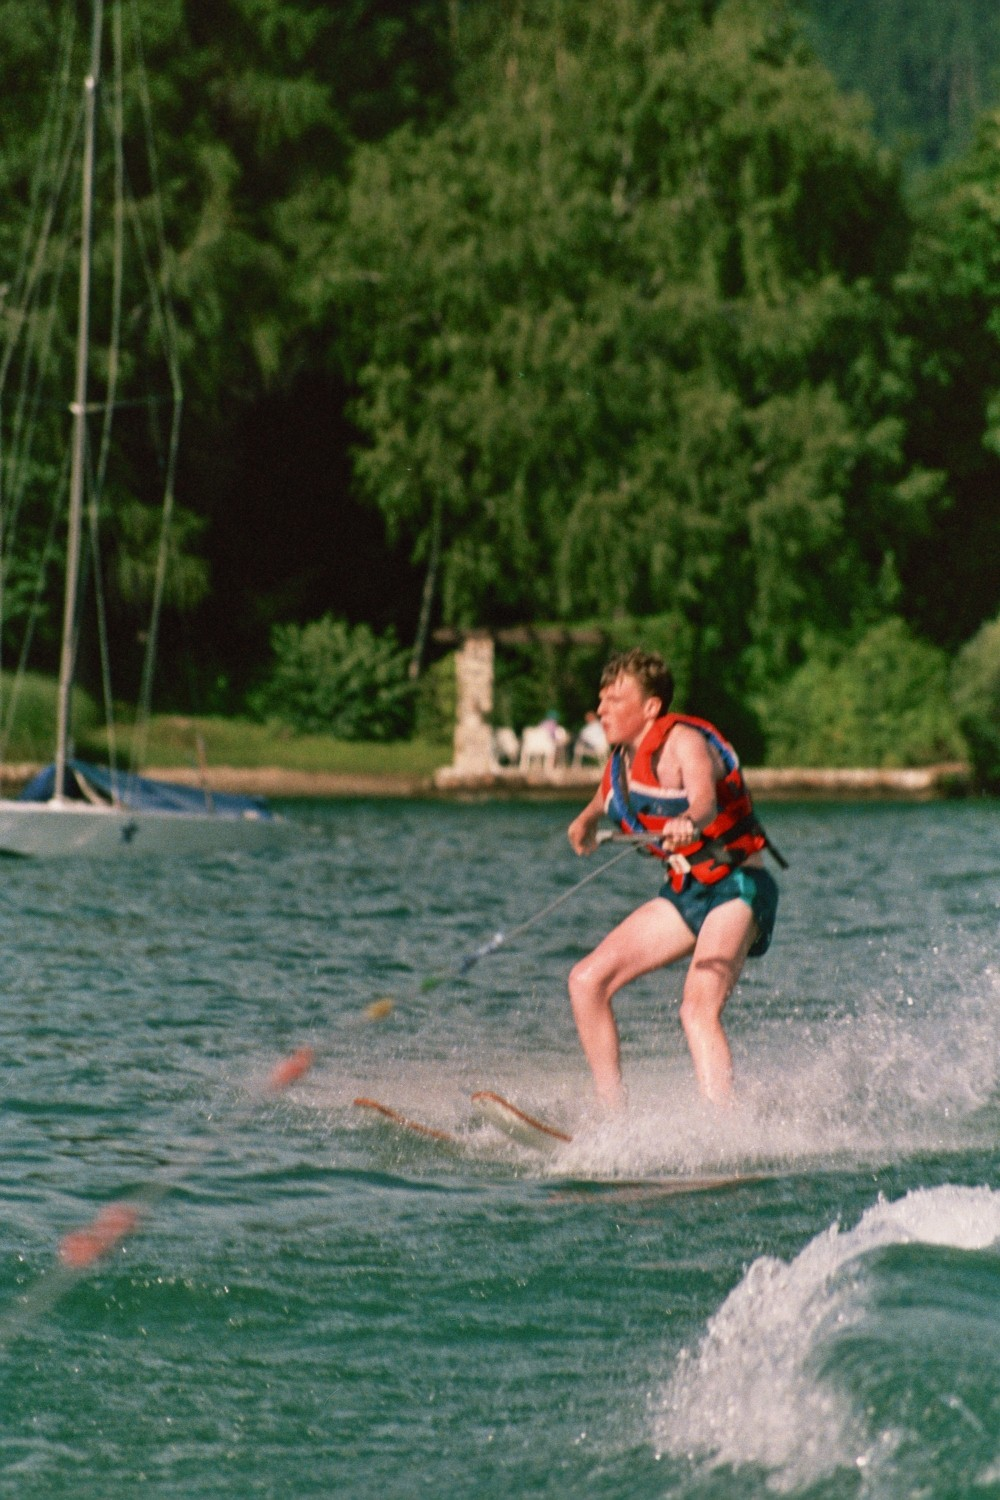 Matt Shearer Waterskiing on the Worthersee, Austria